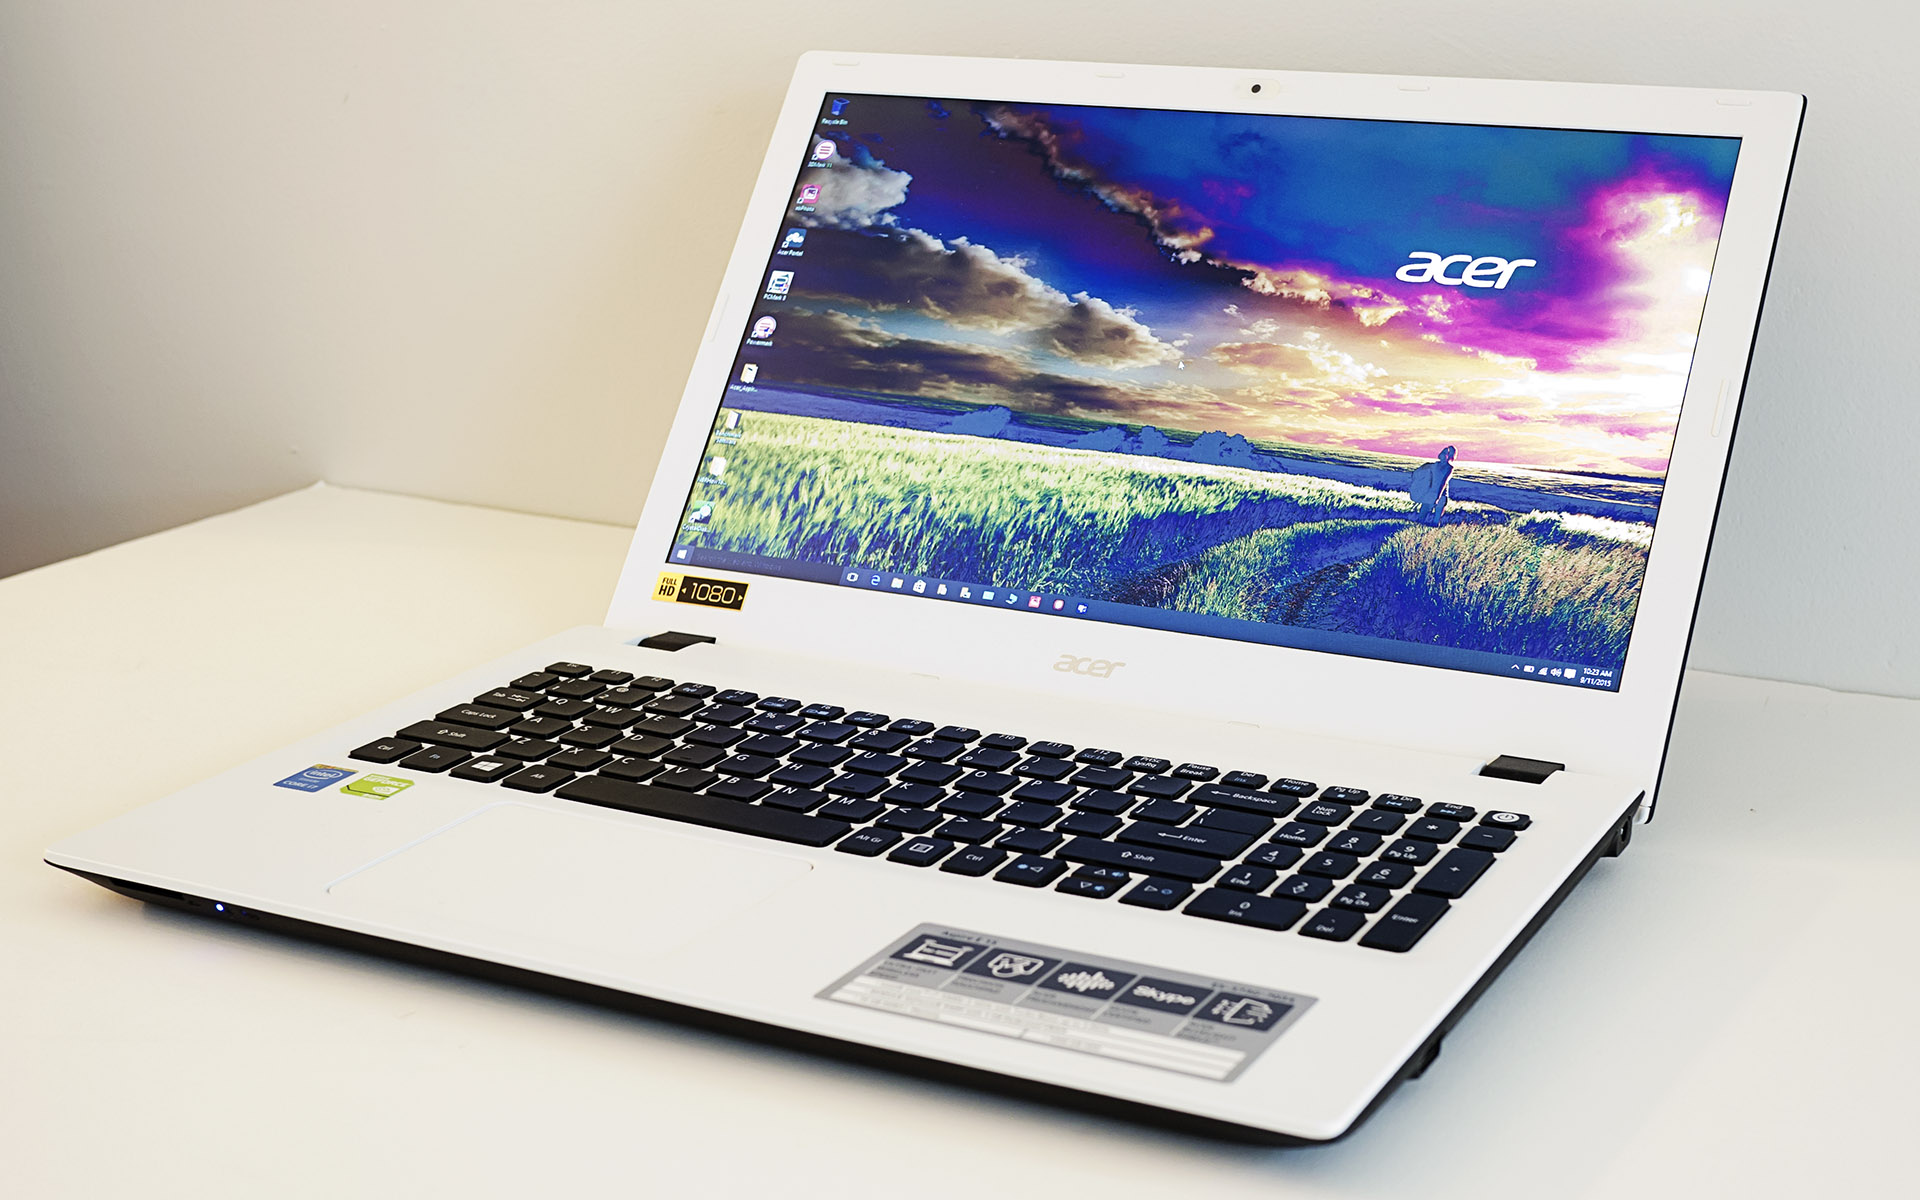 Acer Aspire Es 15 Acer Aspire E 15 Review One Step Forward Two Steps Back